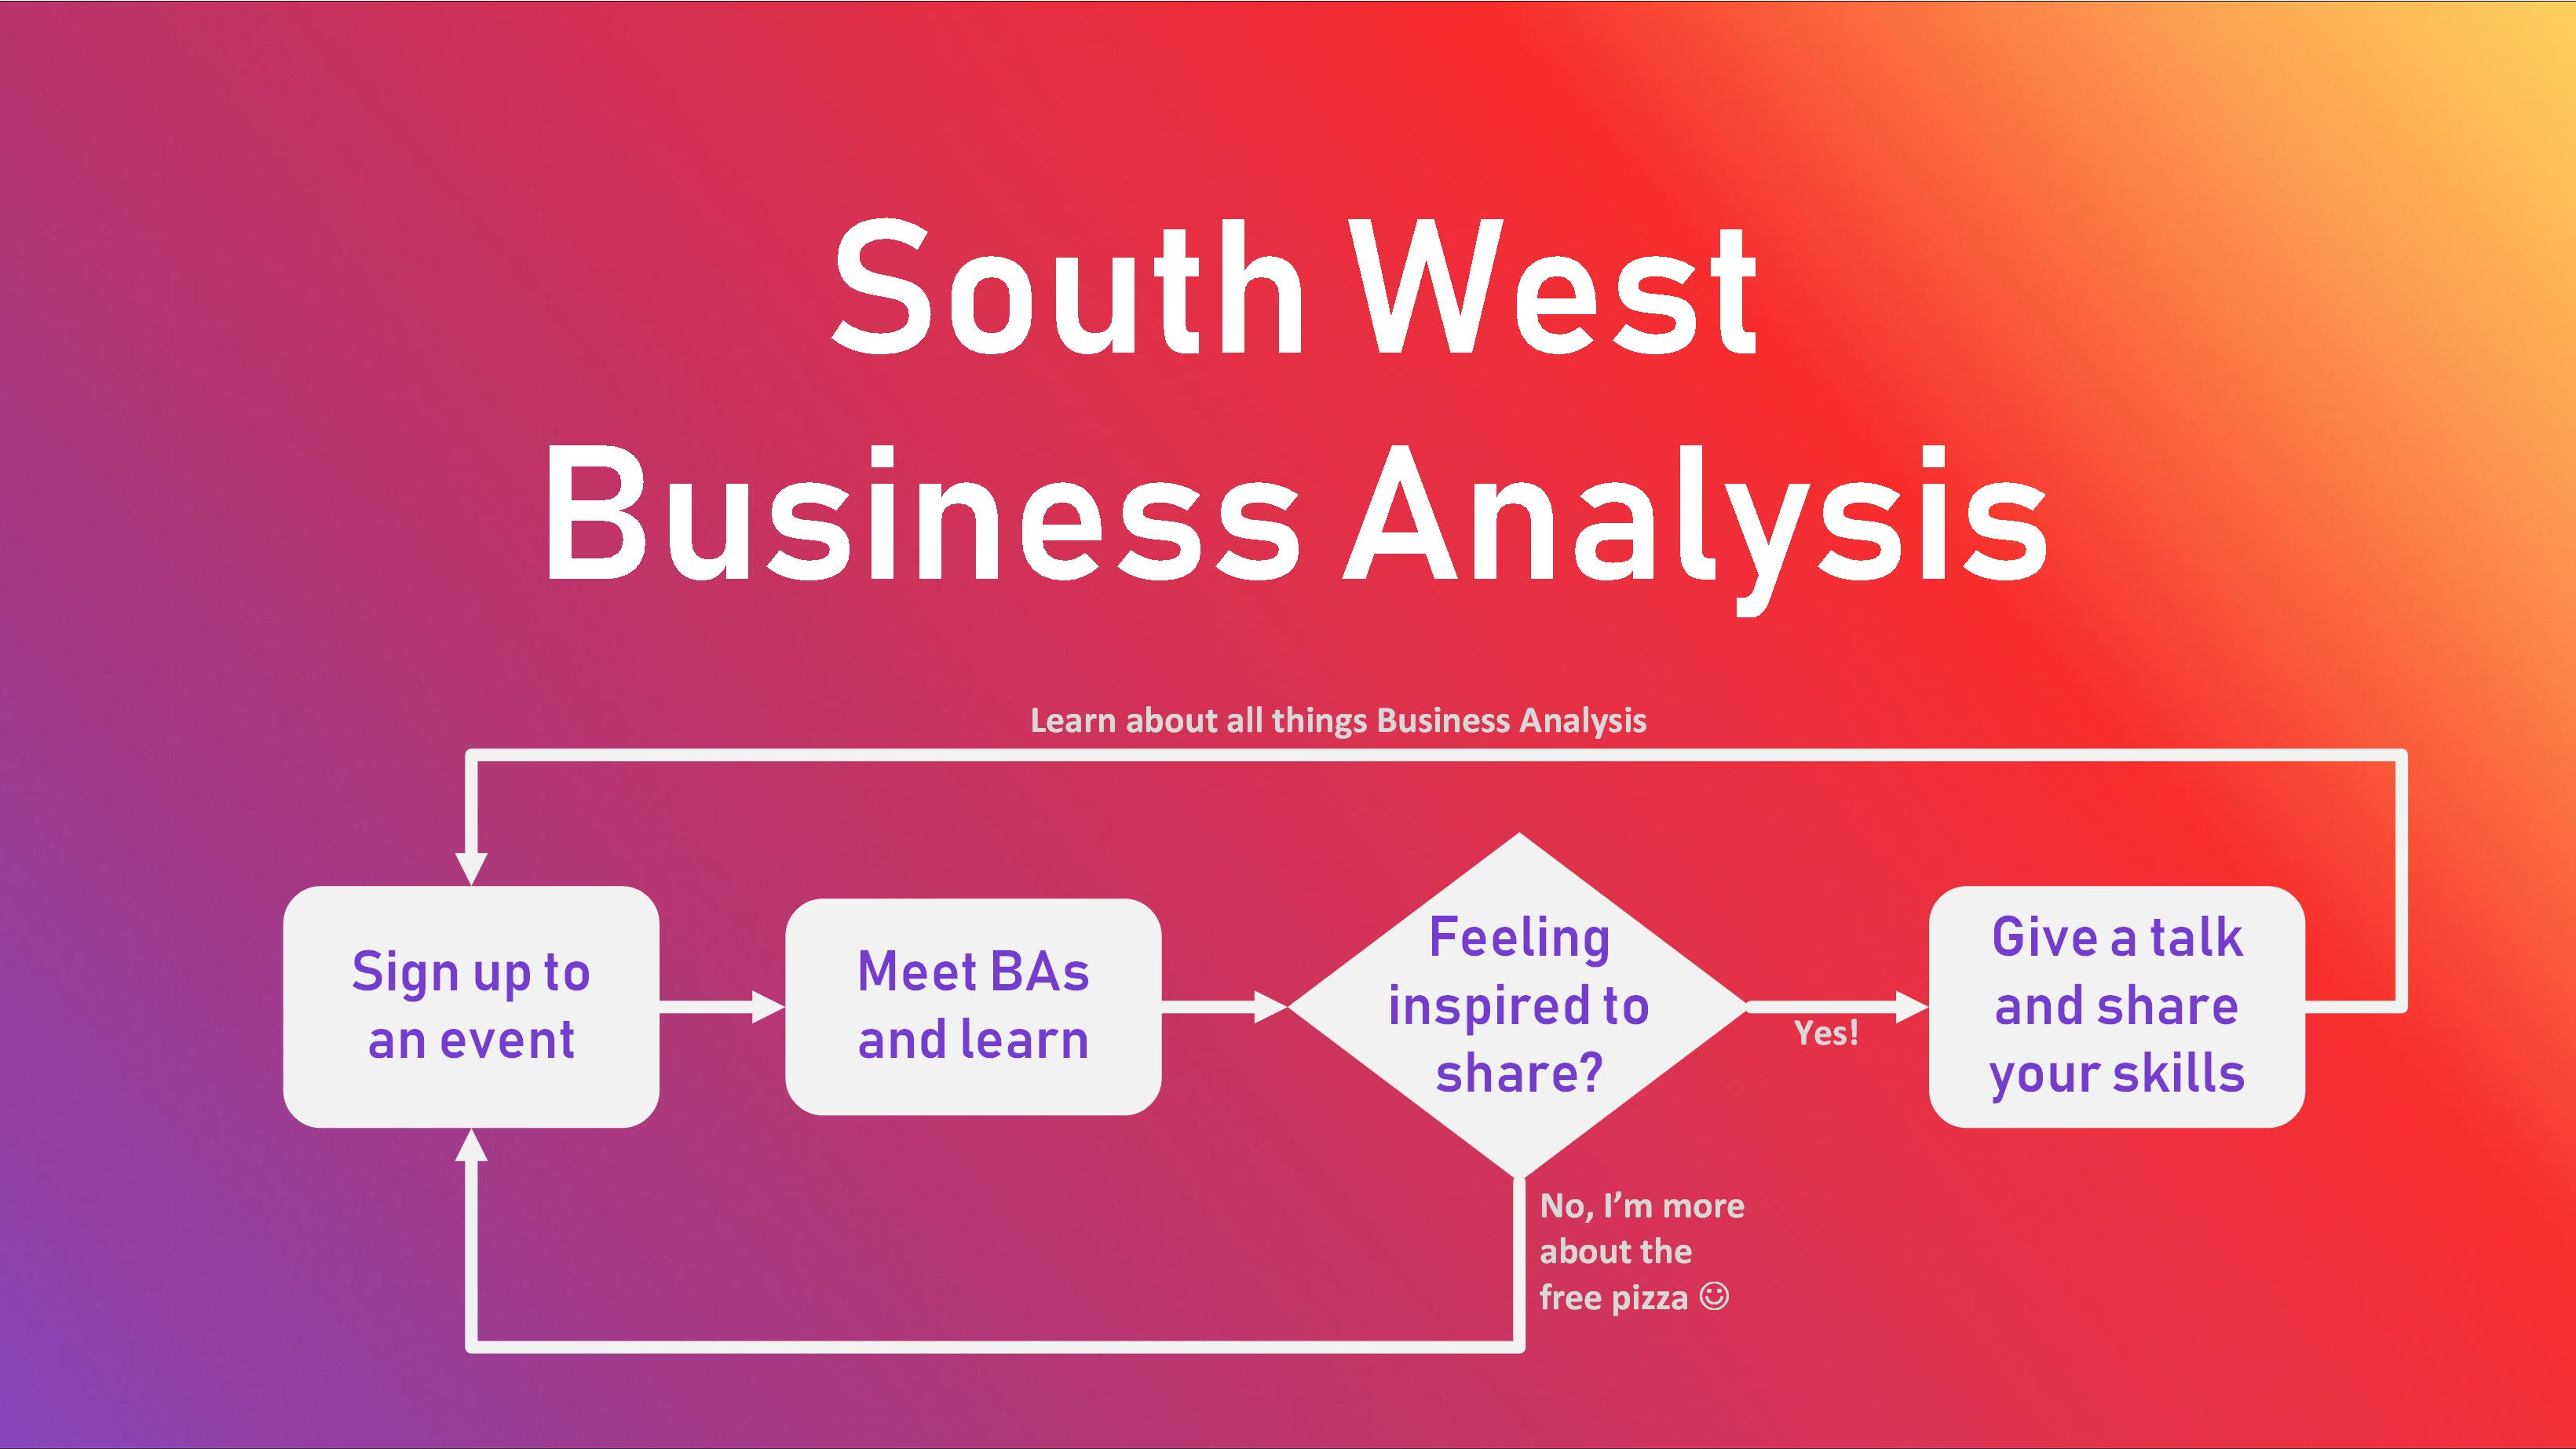 South West Business Analysis